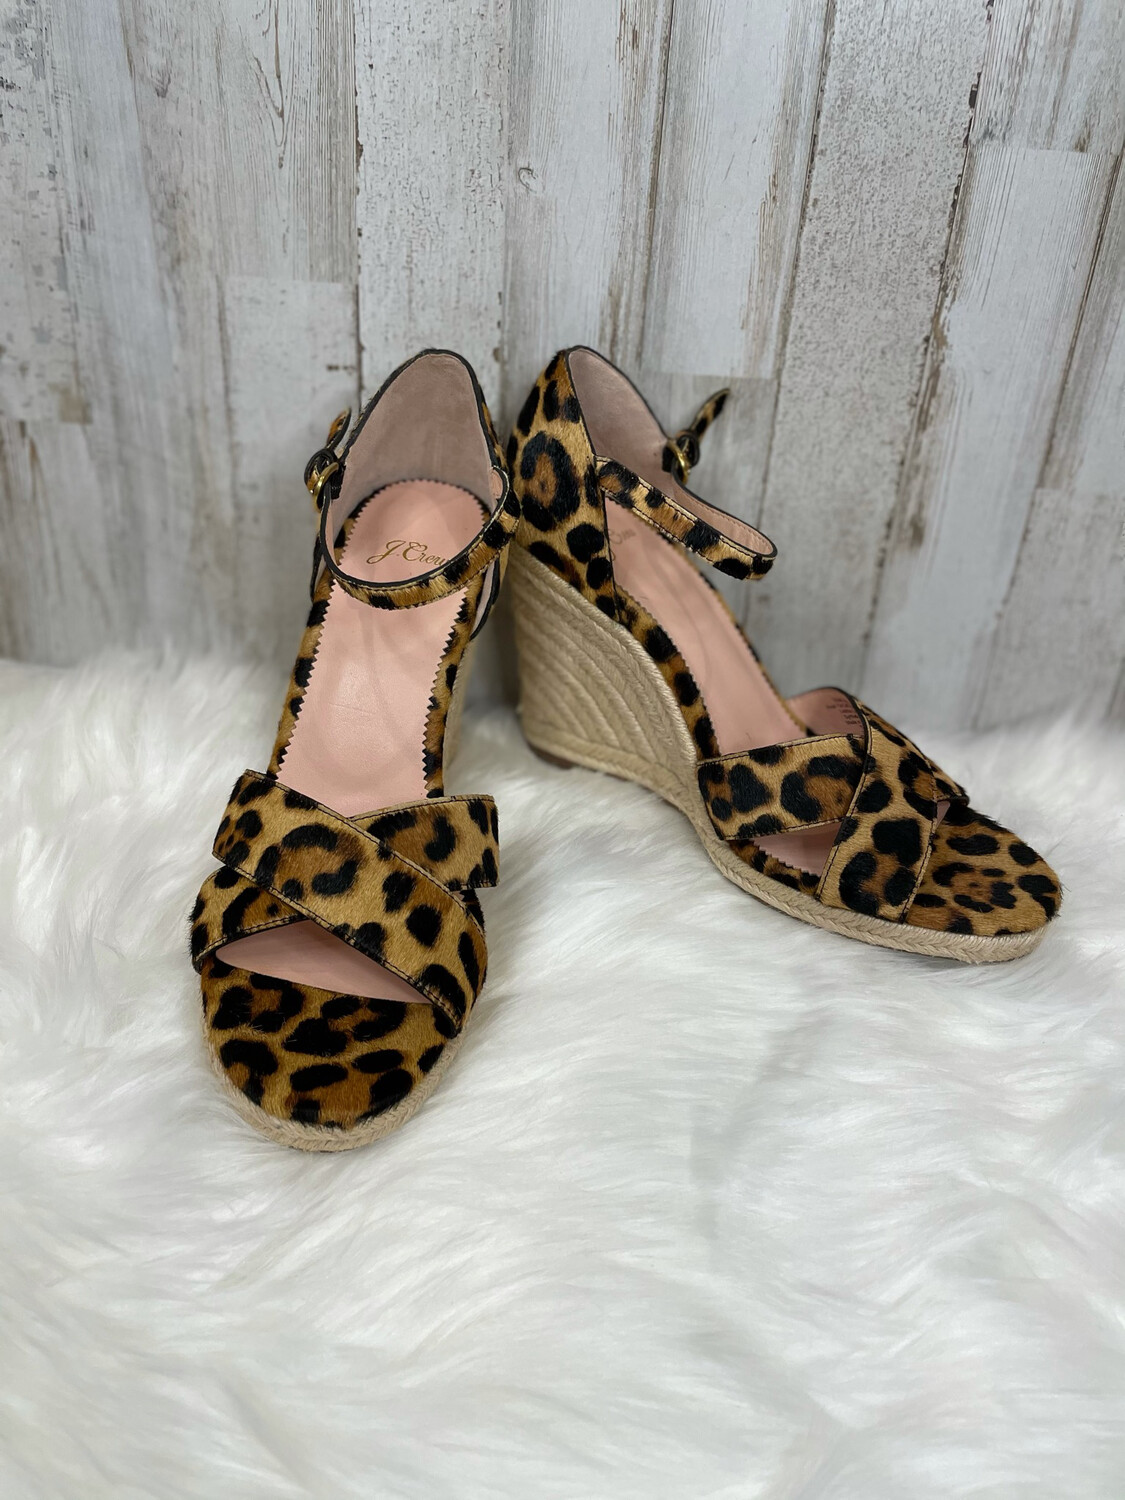 J. Crew Leopard Cross Over Sandal Wedges w/ Ankle Straps - Size 10